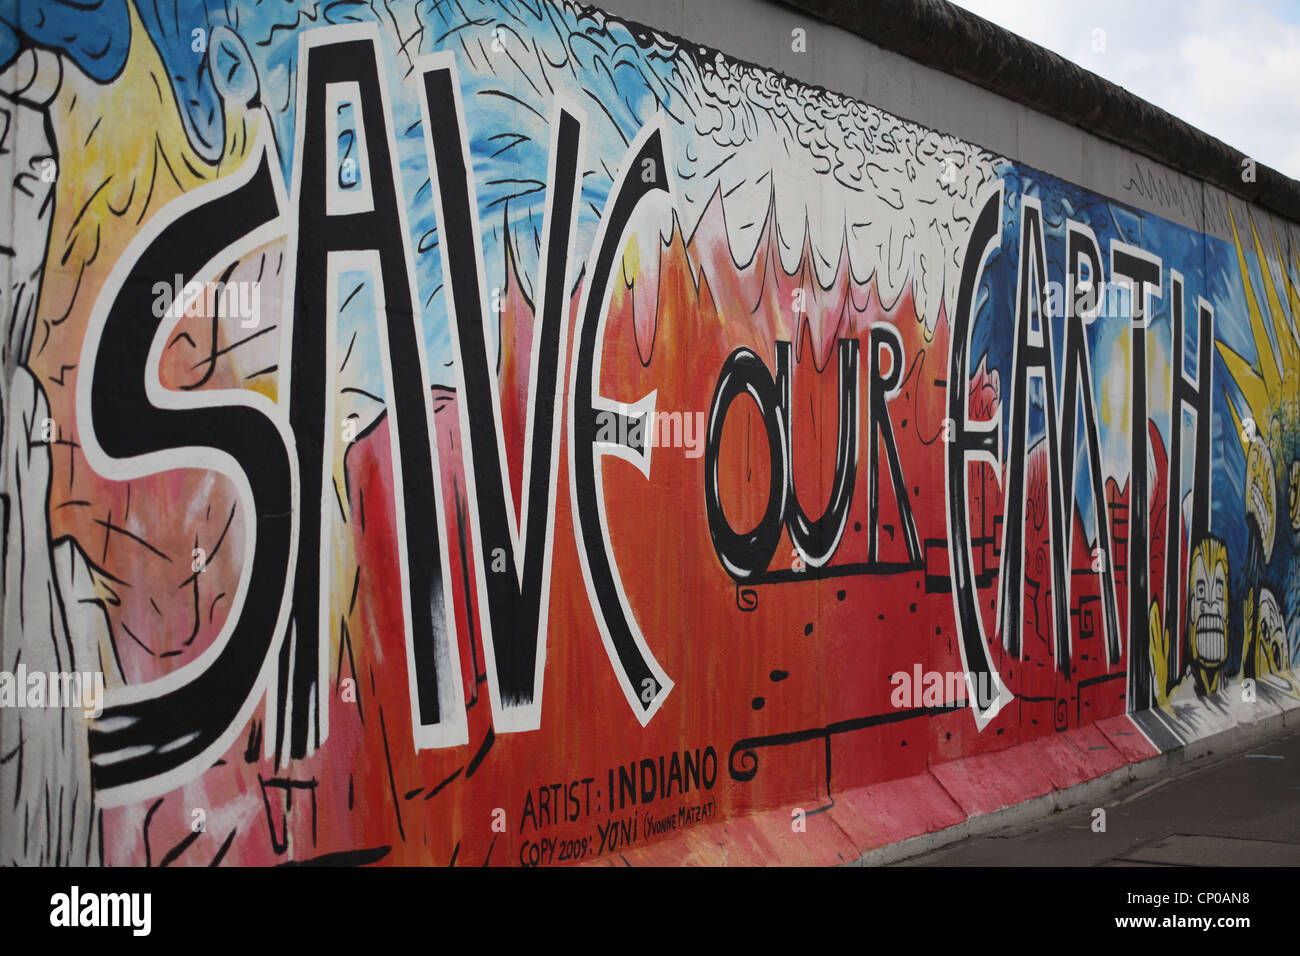 berlin wall east side gallery save our earth by indiano stock photo royalty free image. Black Bedroom Furniture Sets. Home Design Ideas